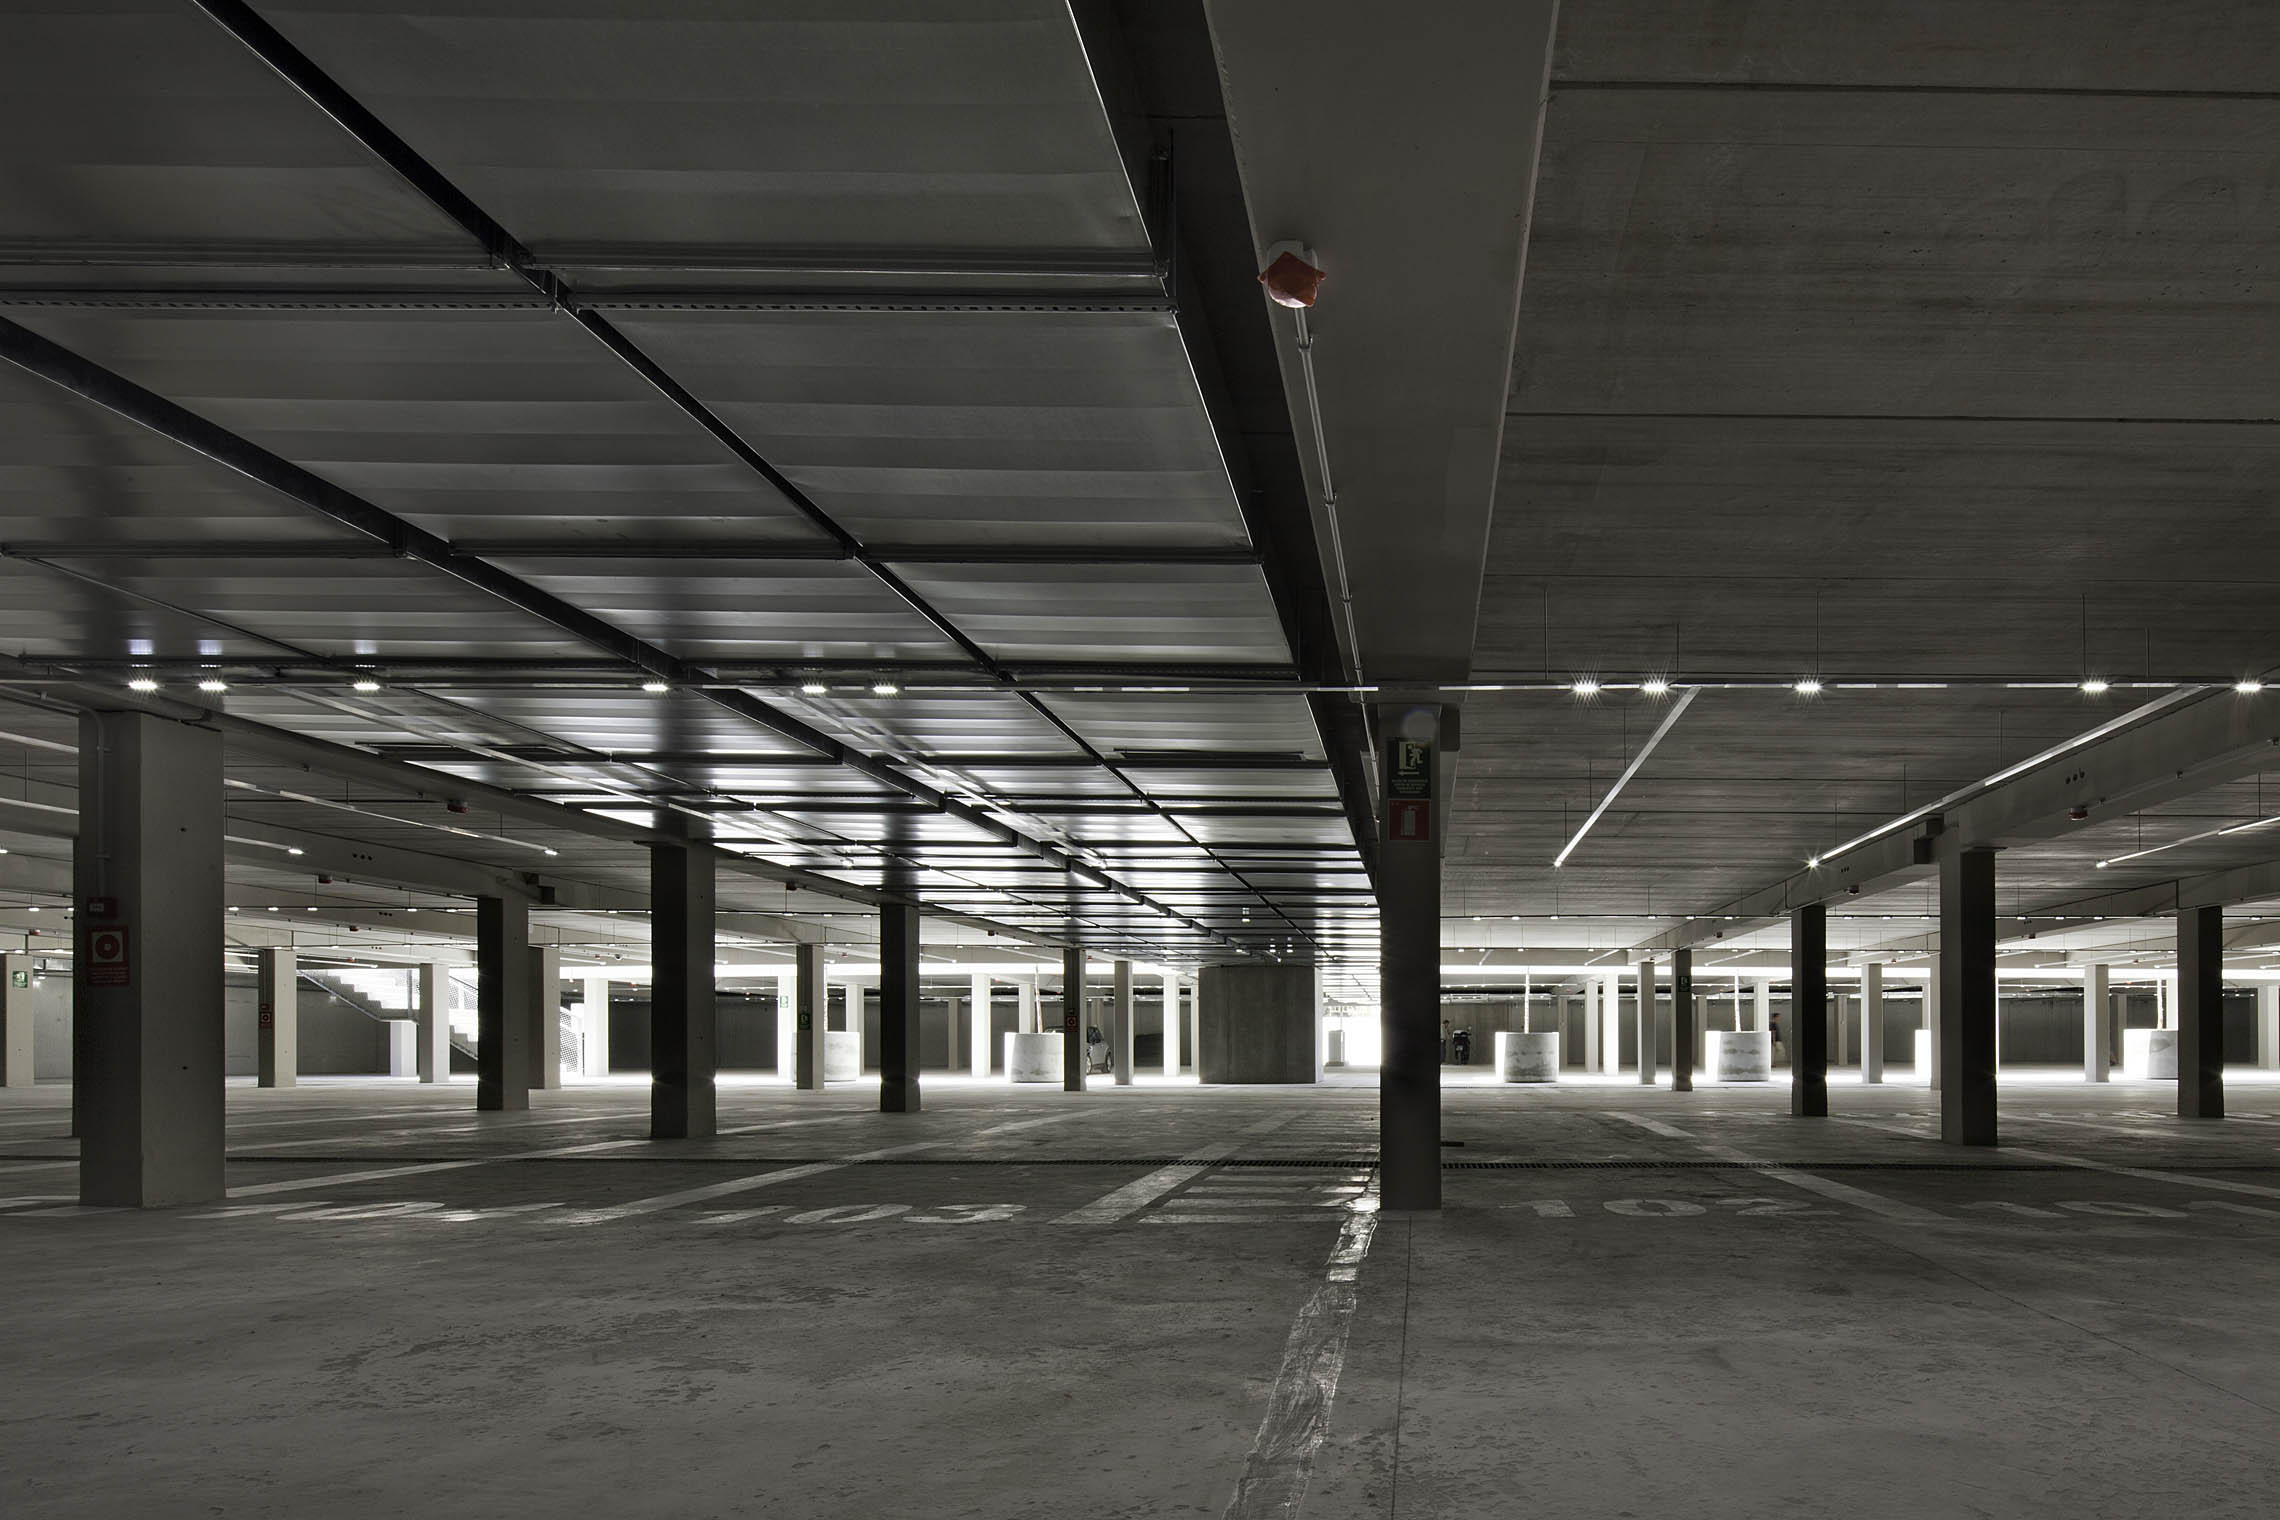 Parking Plaça d'Europa